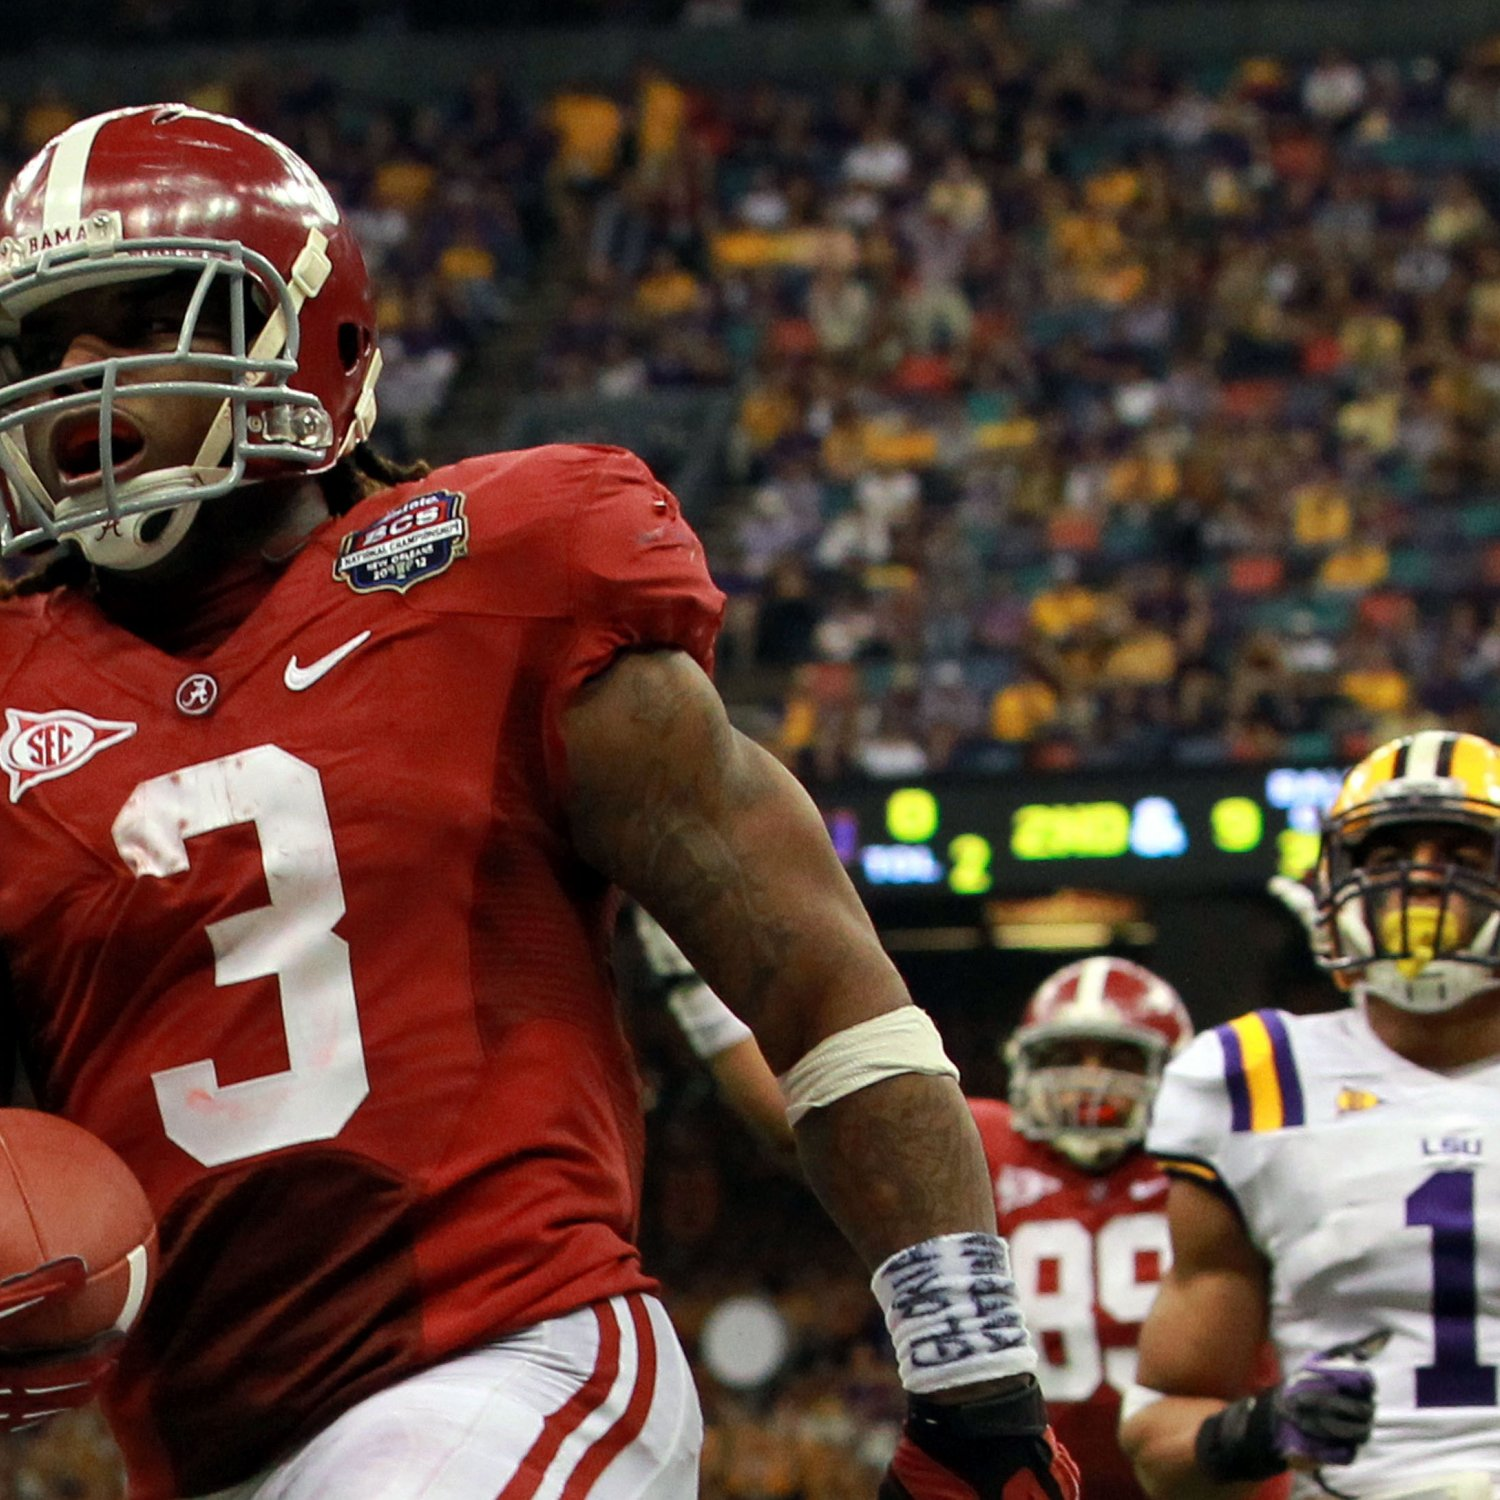 2012 NFL Draft: 6 Rookies That You Should Have On Your